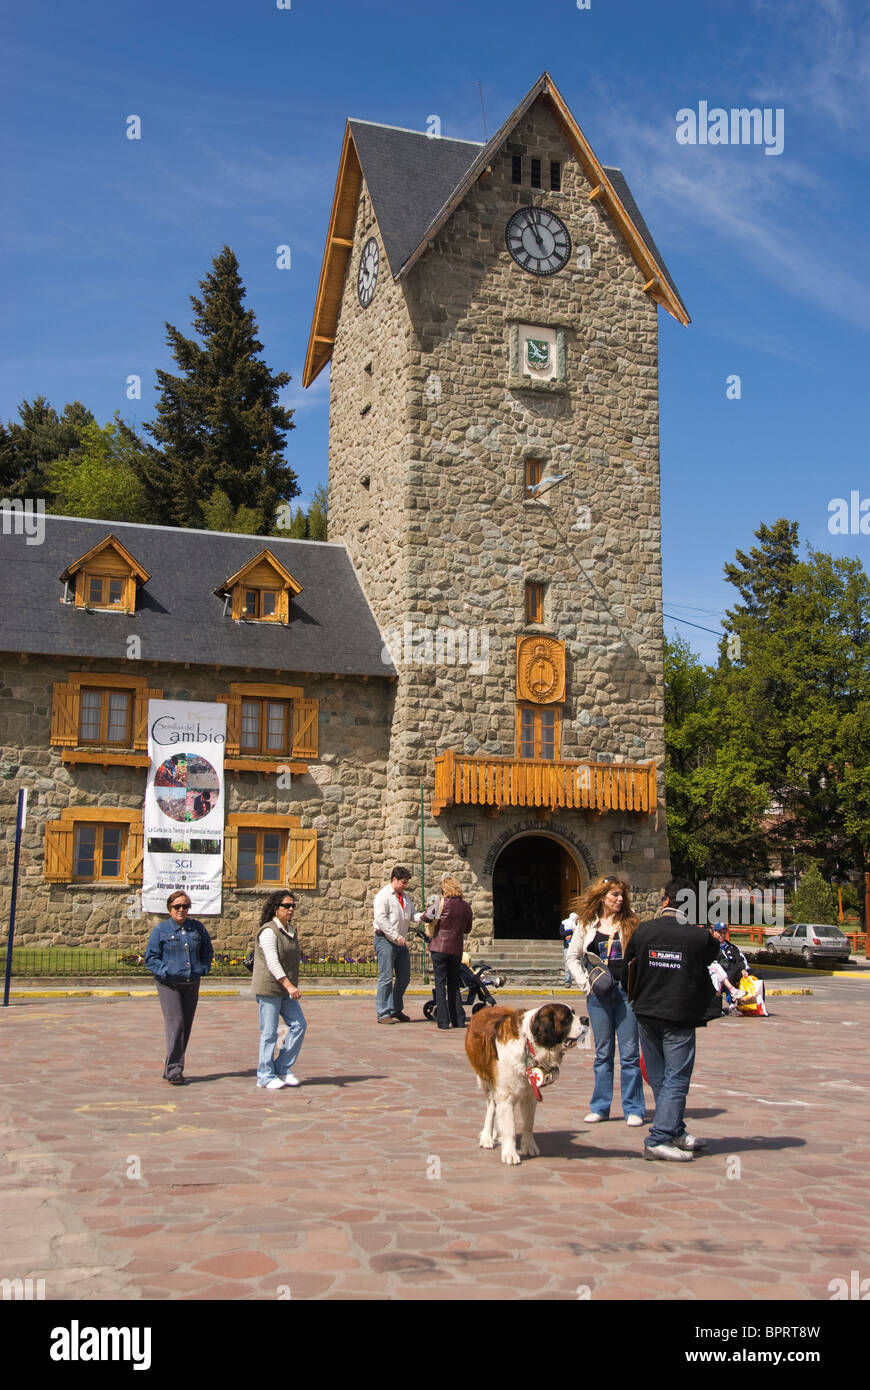 Elk199-1011v Argentina, Bariloche, Civic Center and Town Hall - Stock Image